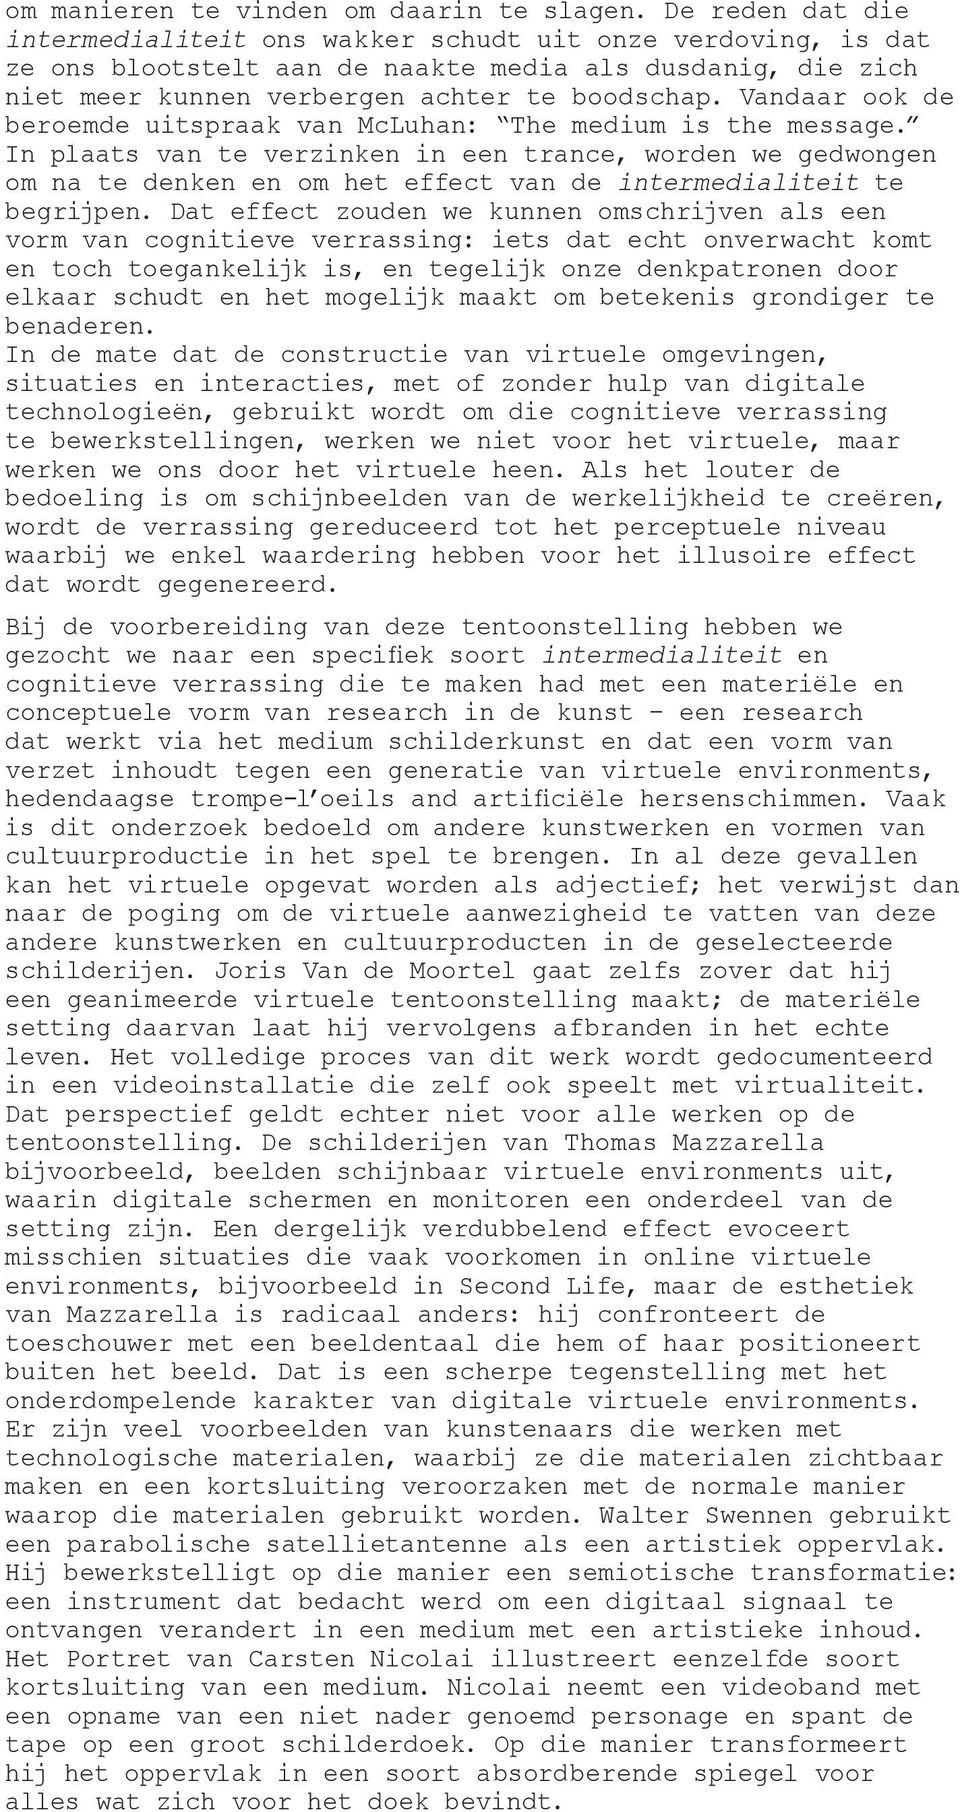 Vandaar ook de beroemde uitspraak van McLuhan: The medium is the message.